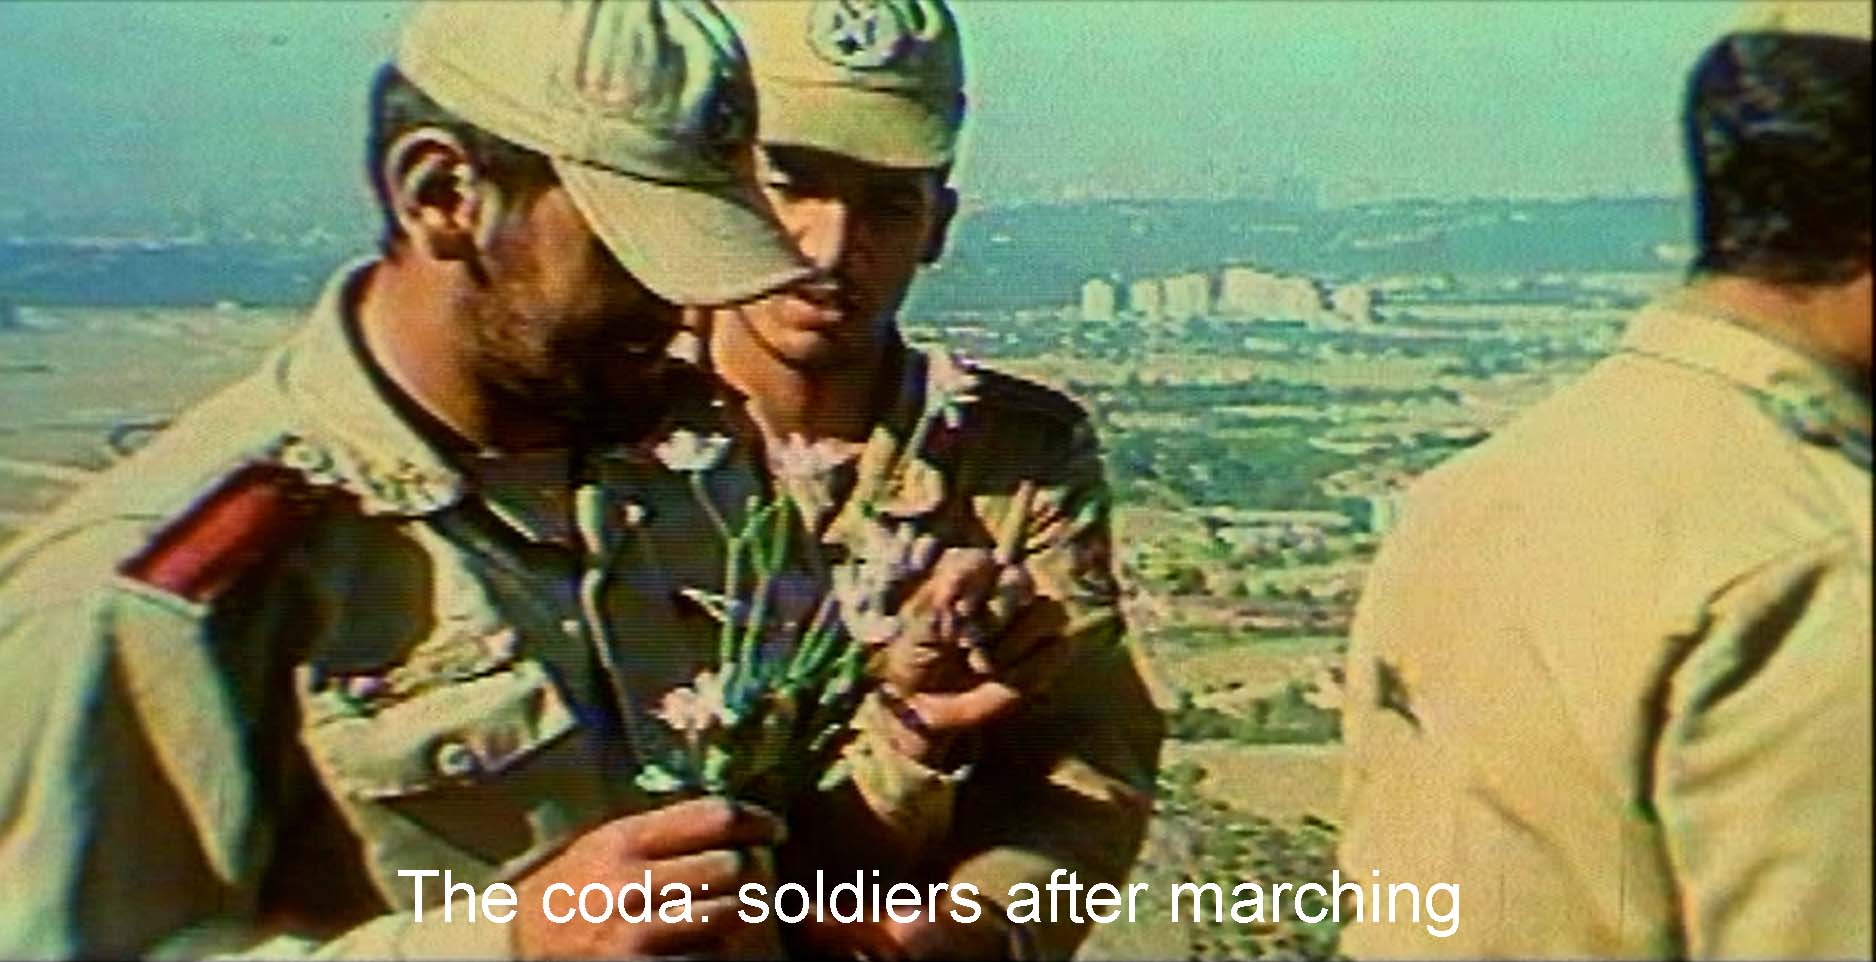 The coda: the soldiers after marching